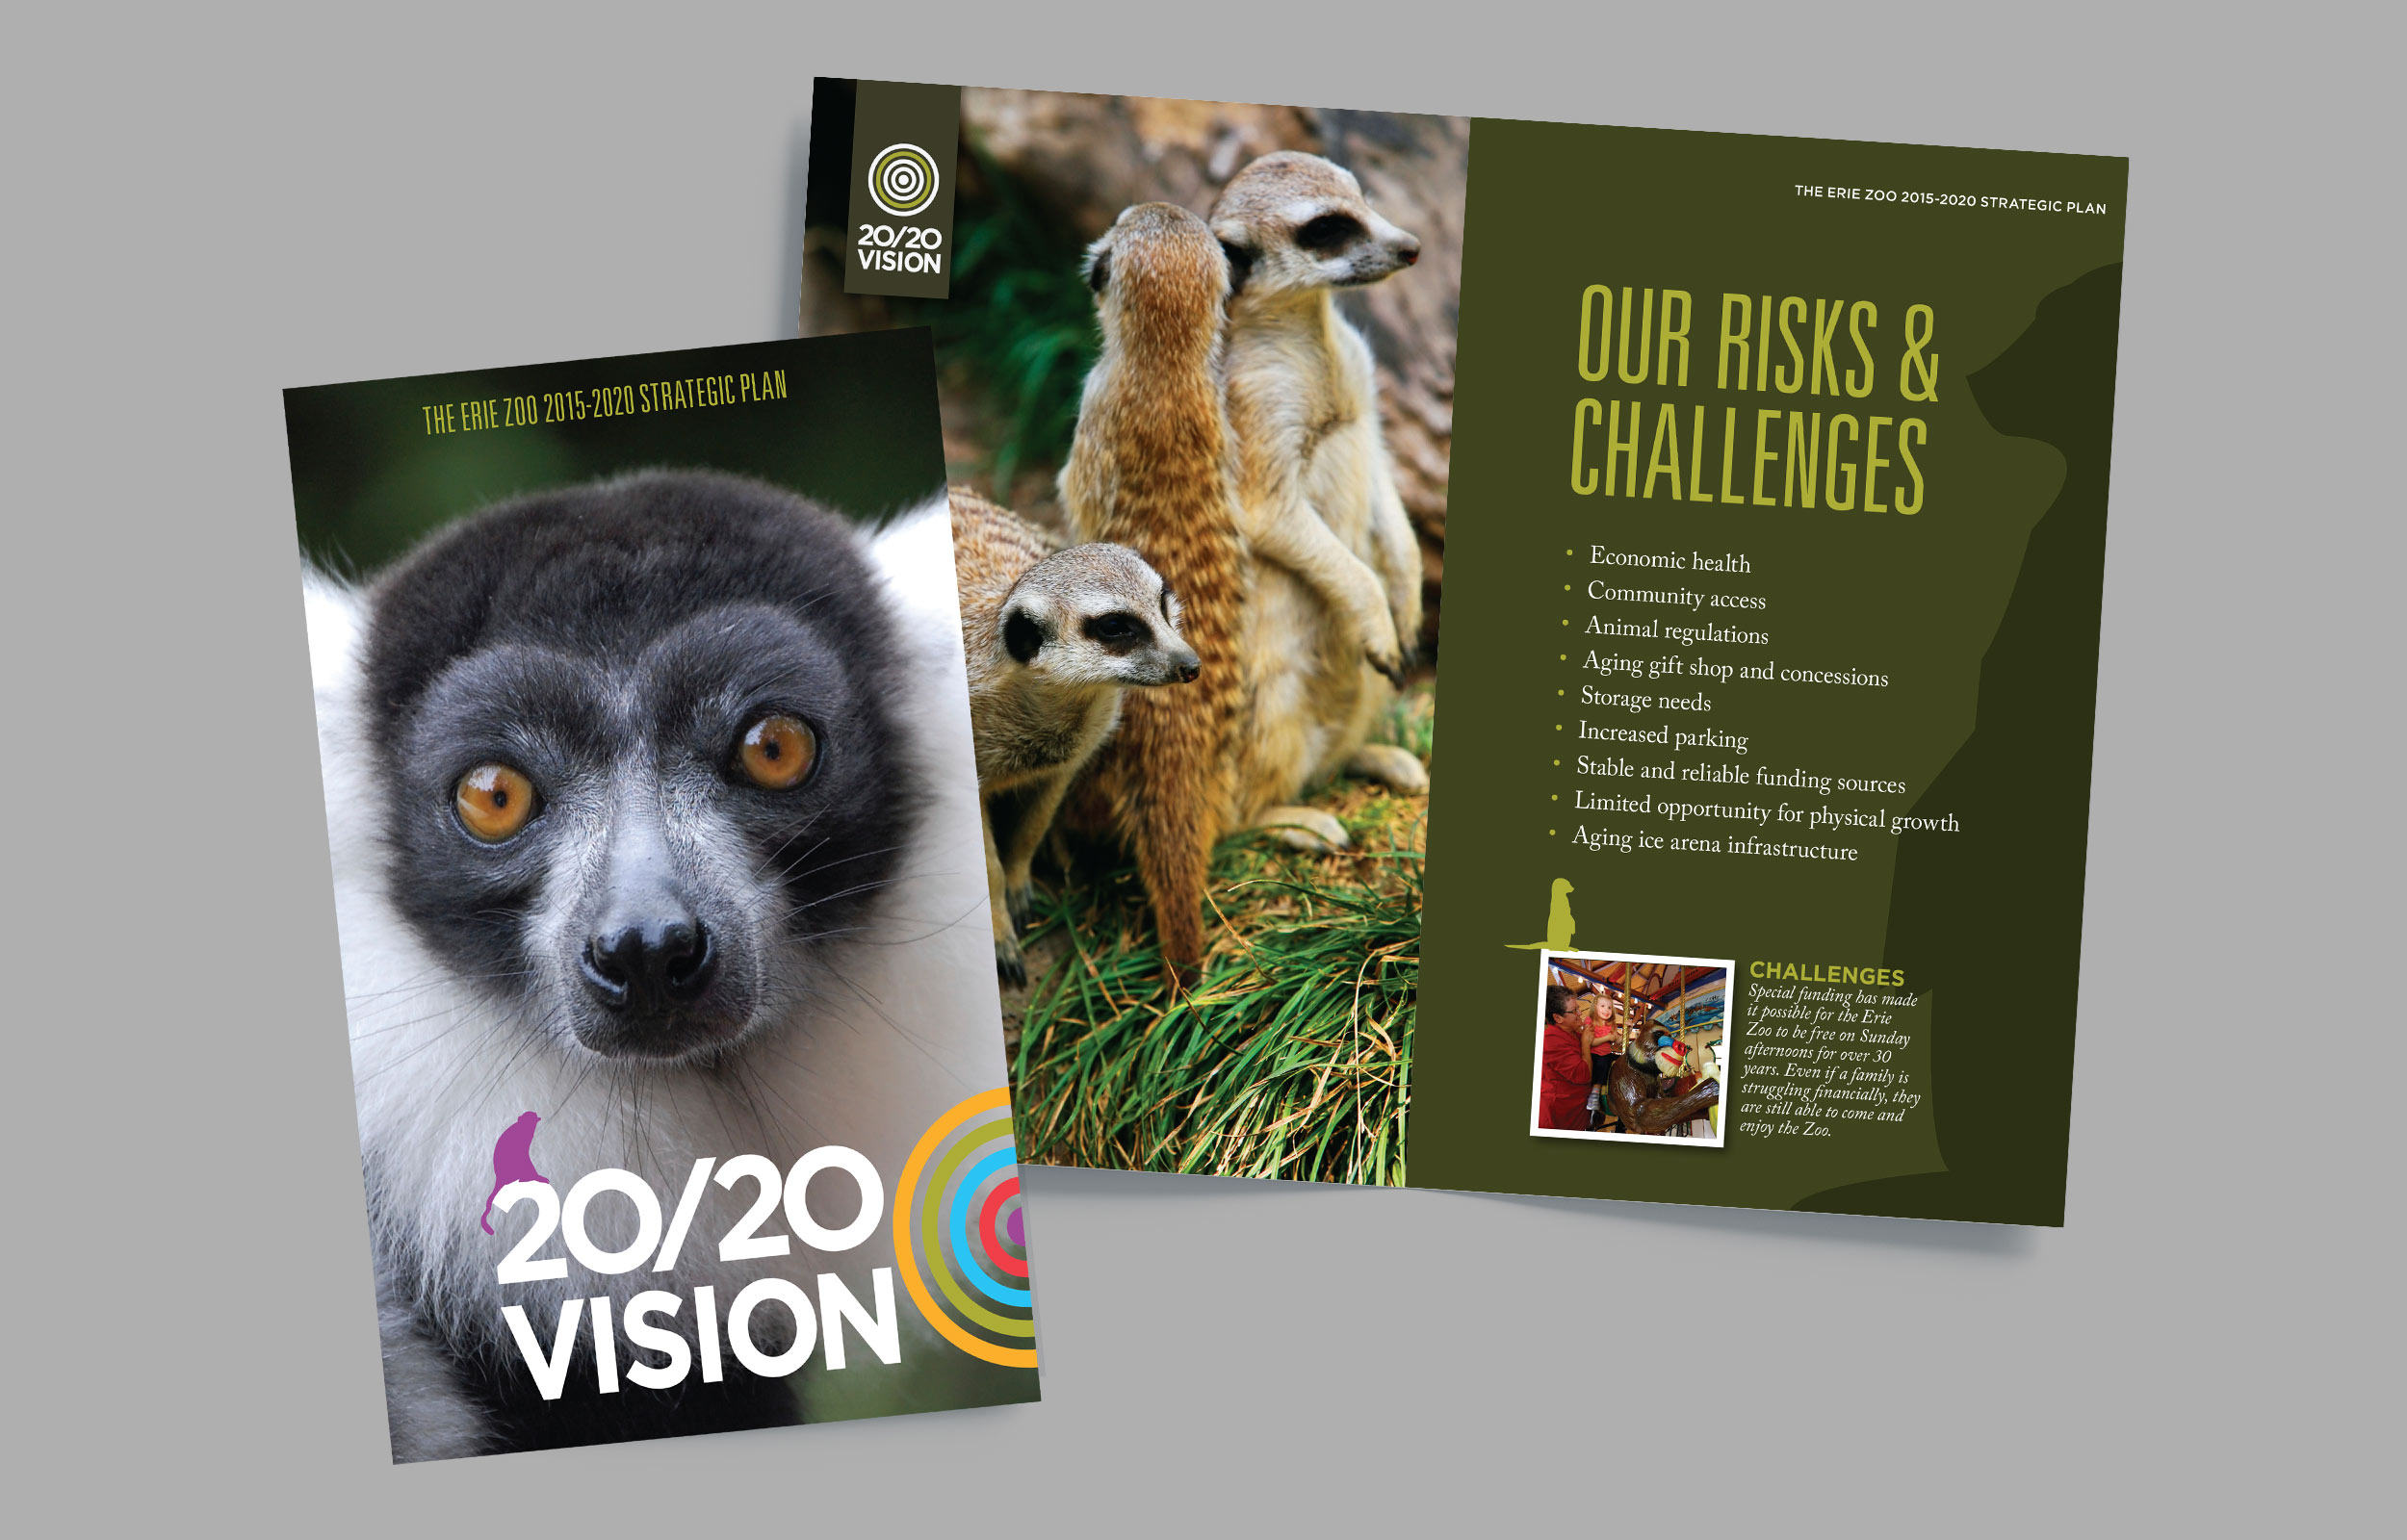 https://papaadvertising.com/wp-content/uploads/2015/05/Erie_Zoo_Strategy_Book.jpg